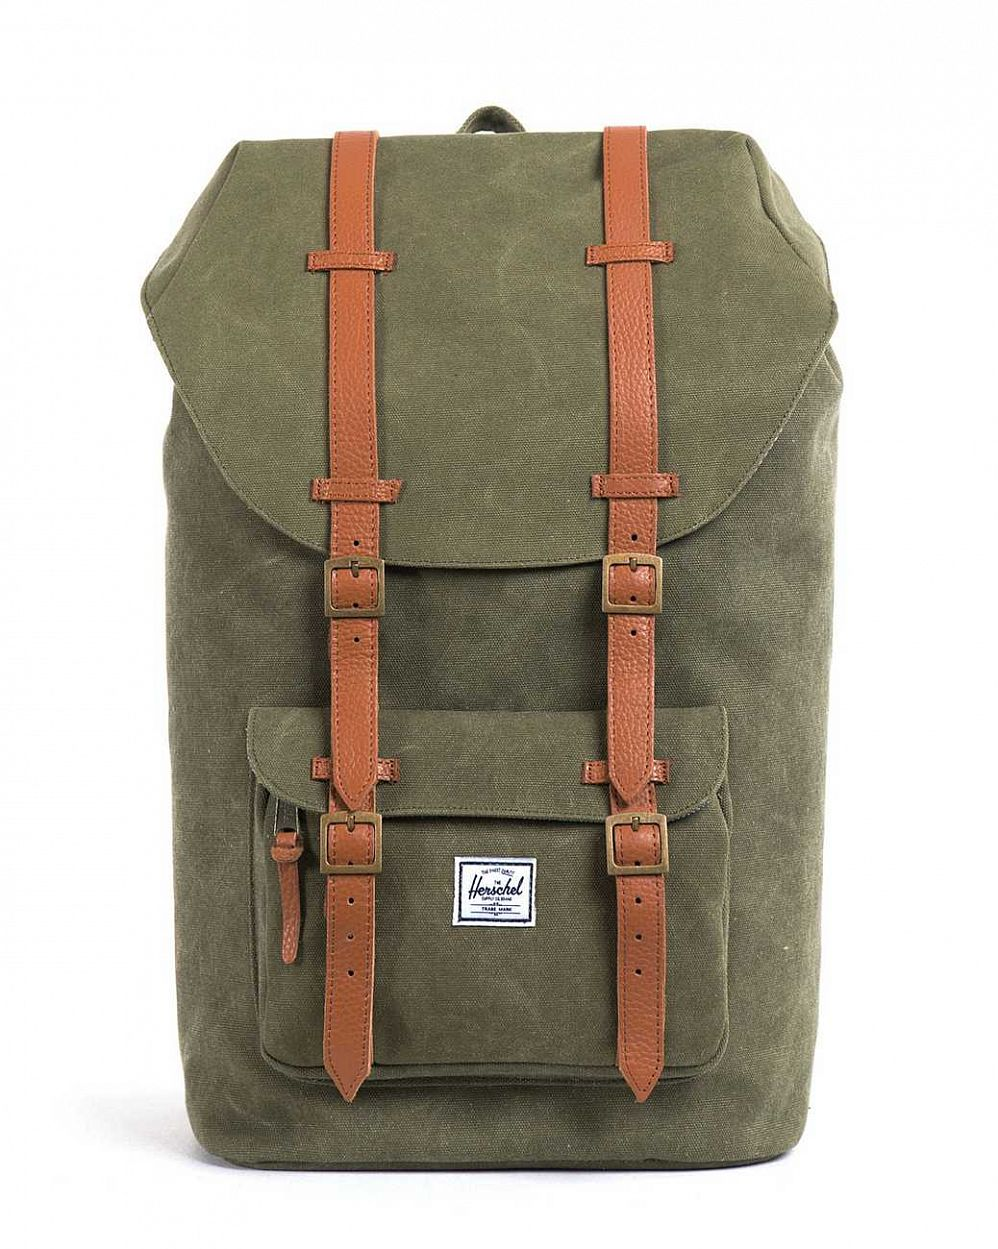 купить Рюкзак Herschel Little America Canvas Washed Army (10014-CA) в Москве